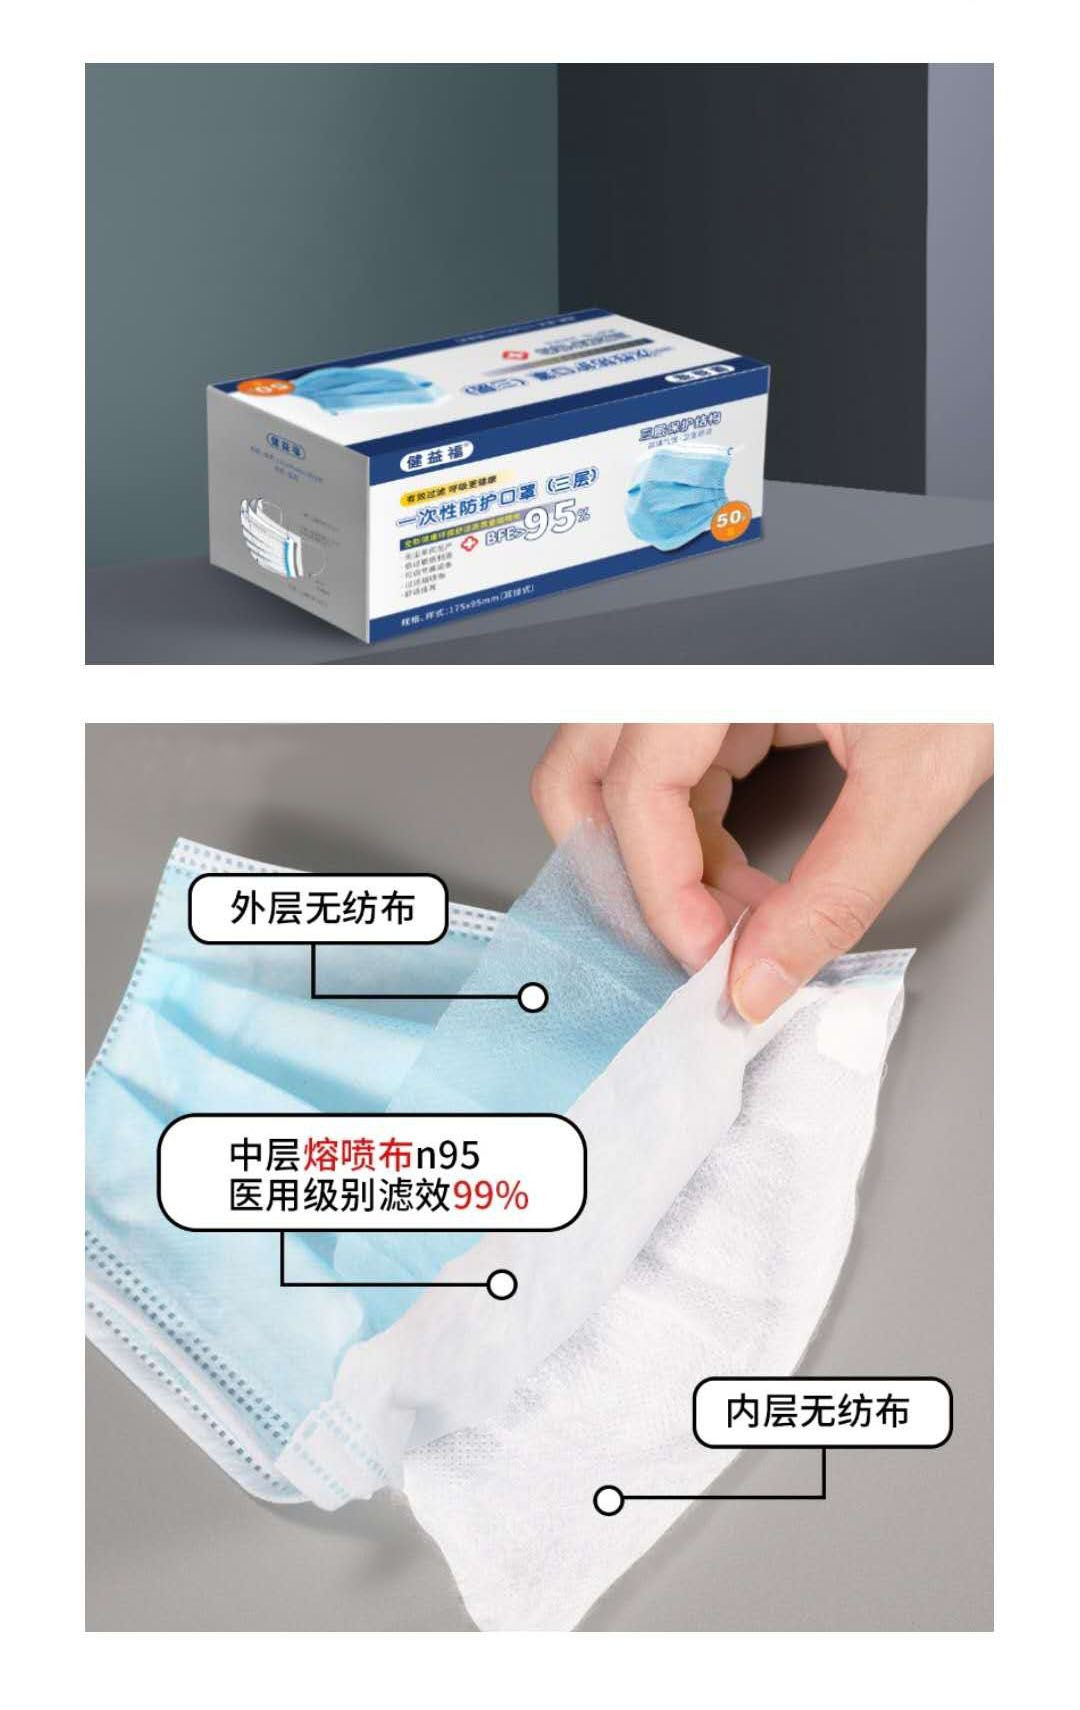 Surgical Face Mask ready in stock Export License, Test Report, ready in stock